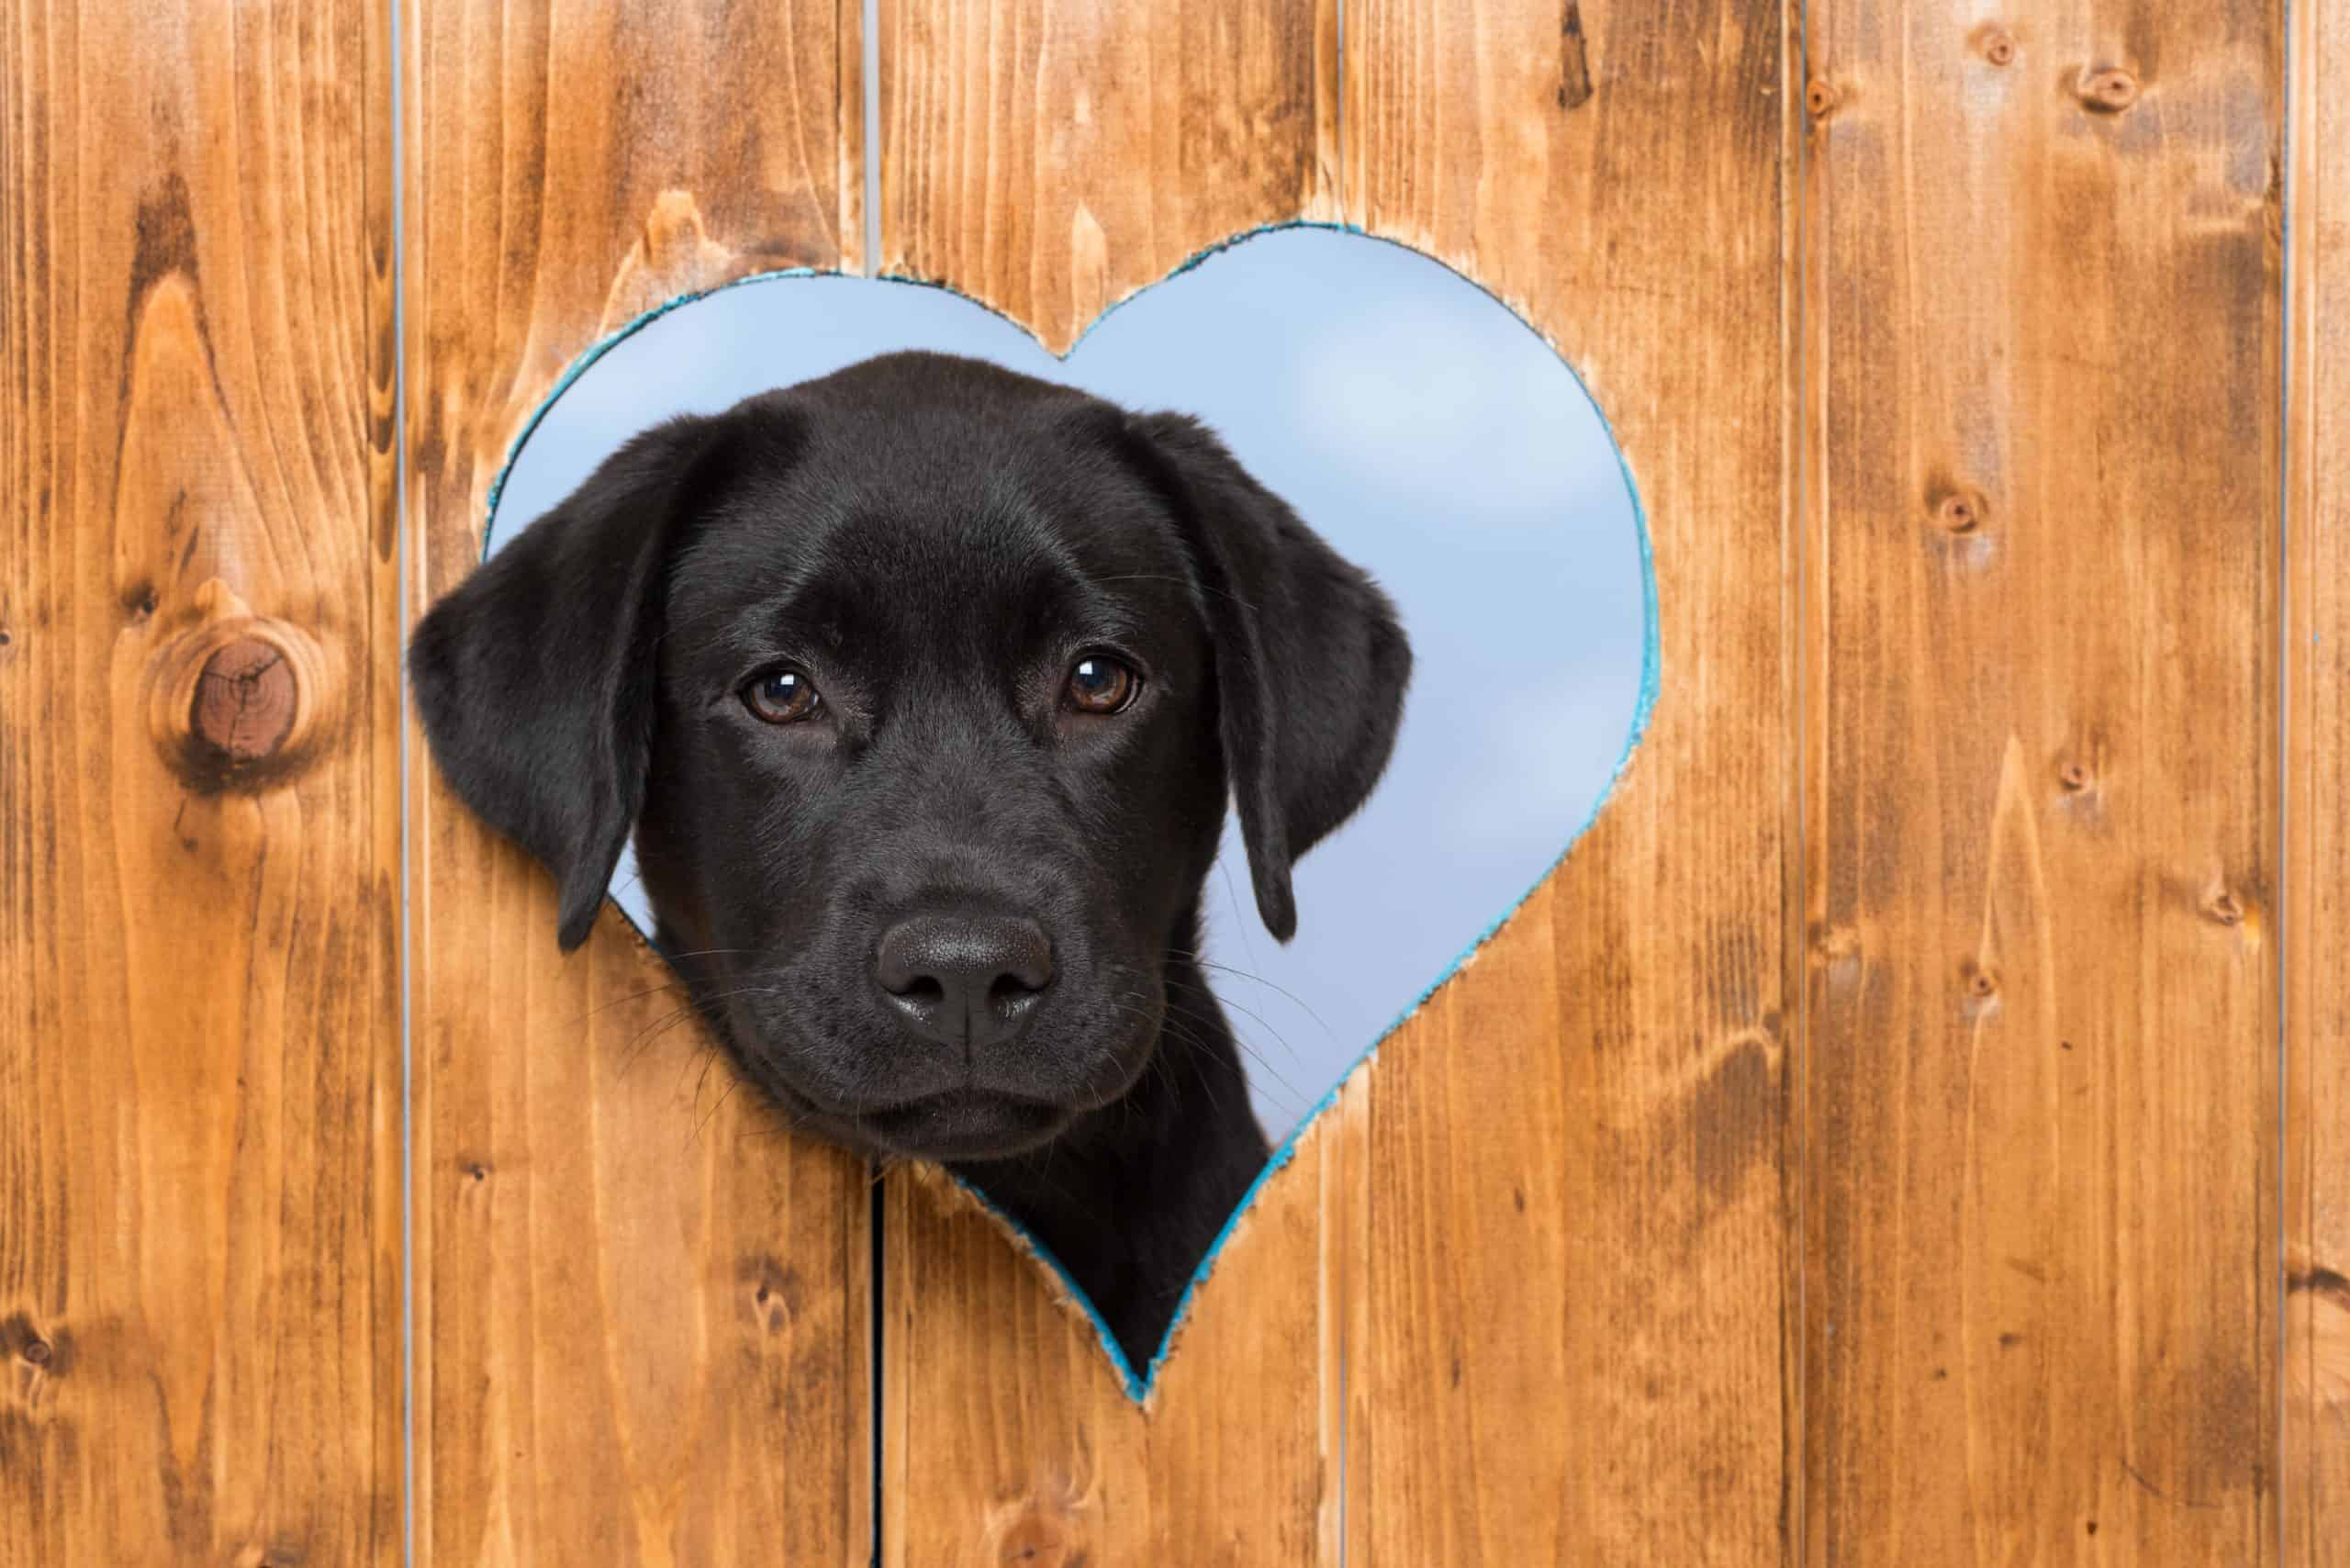 Black Labrador puppy peeks out through heart-shaped opening in fence.